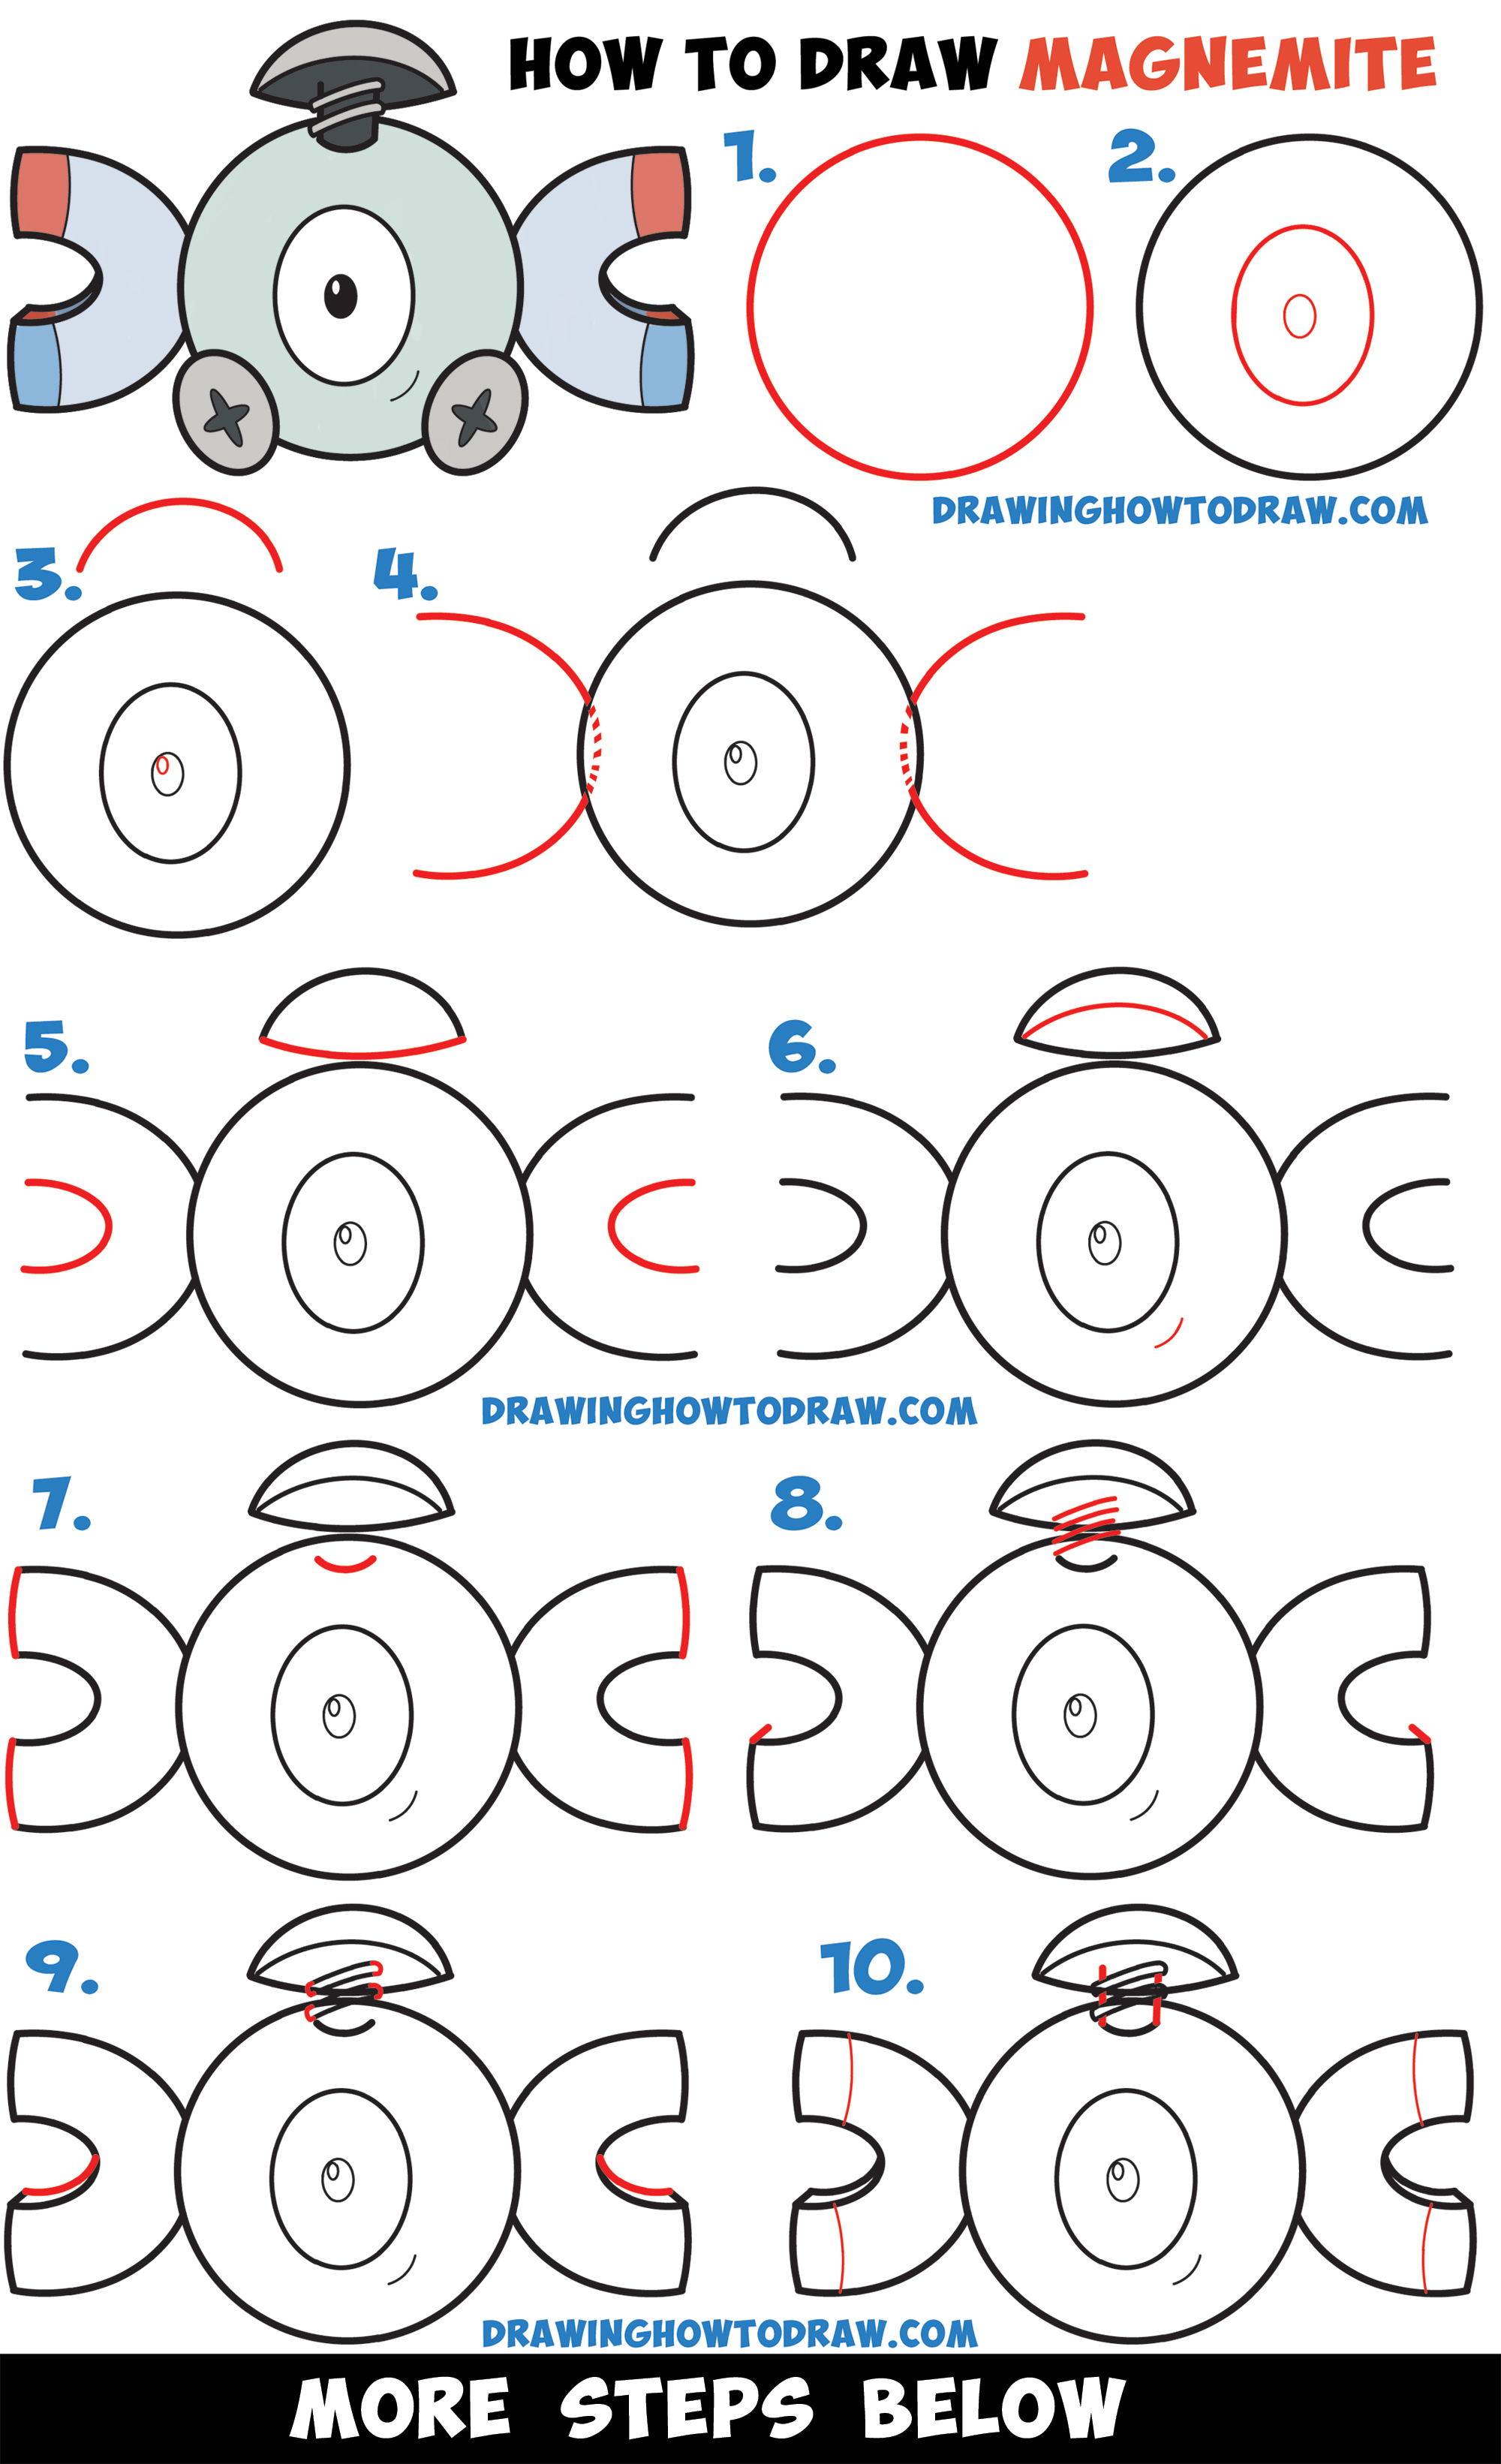 LearnHow to Draw Magnemite from Pokemon (Cute / Kawaii Chibi Version) Easy Step by Step Drawing Tutorial for Kids